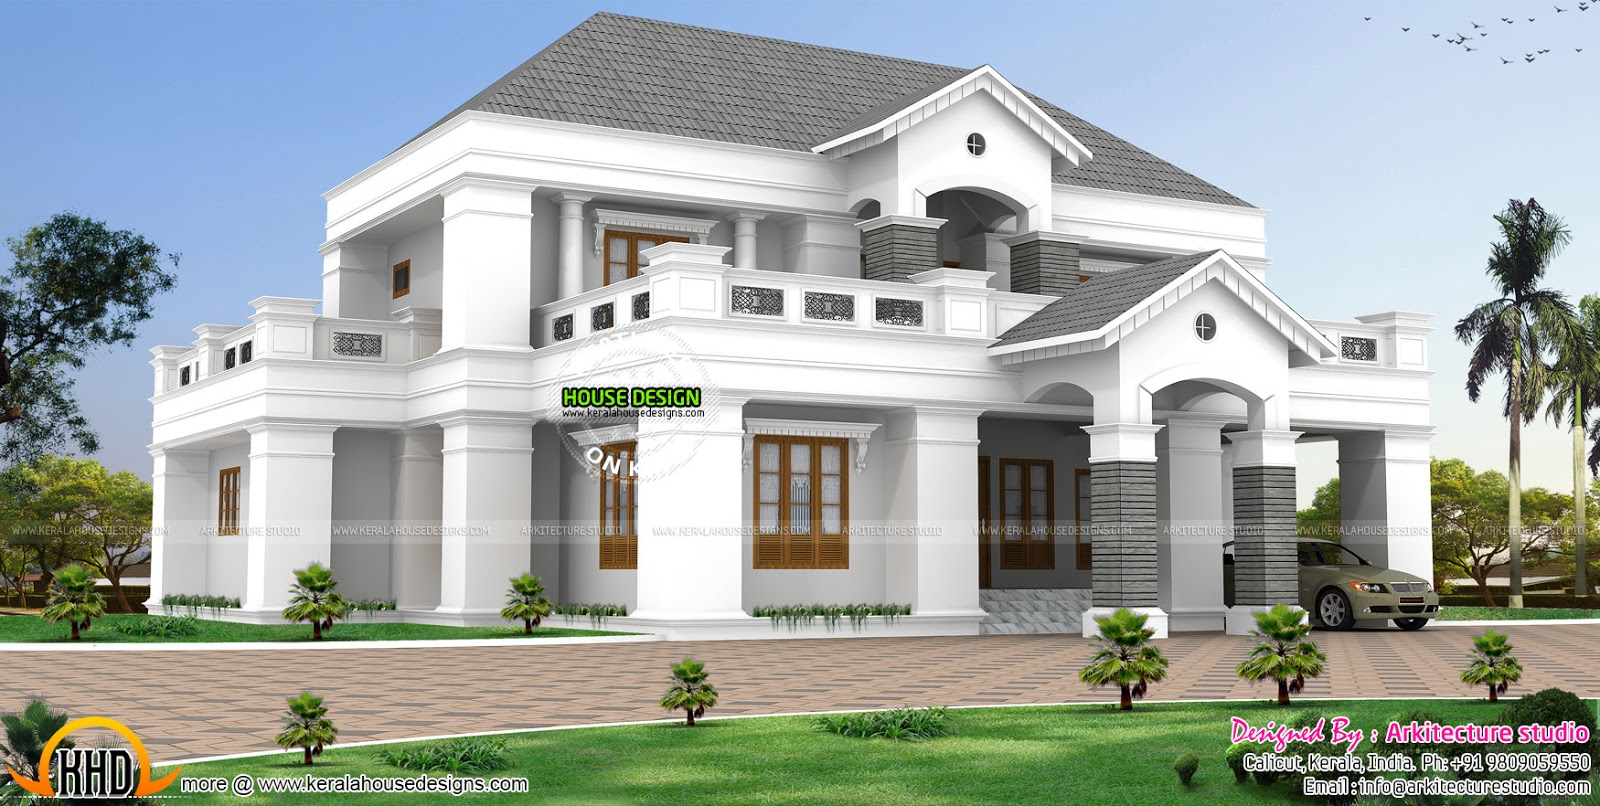 Luxurious pillar type home design kerala home design and for Home house design